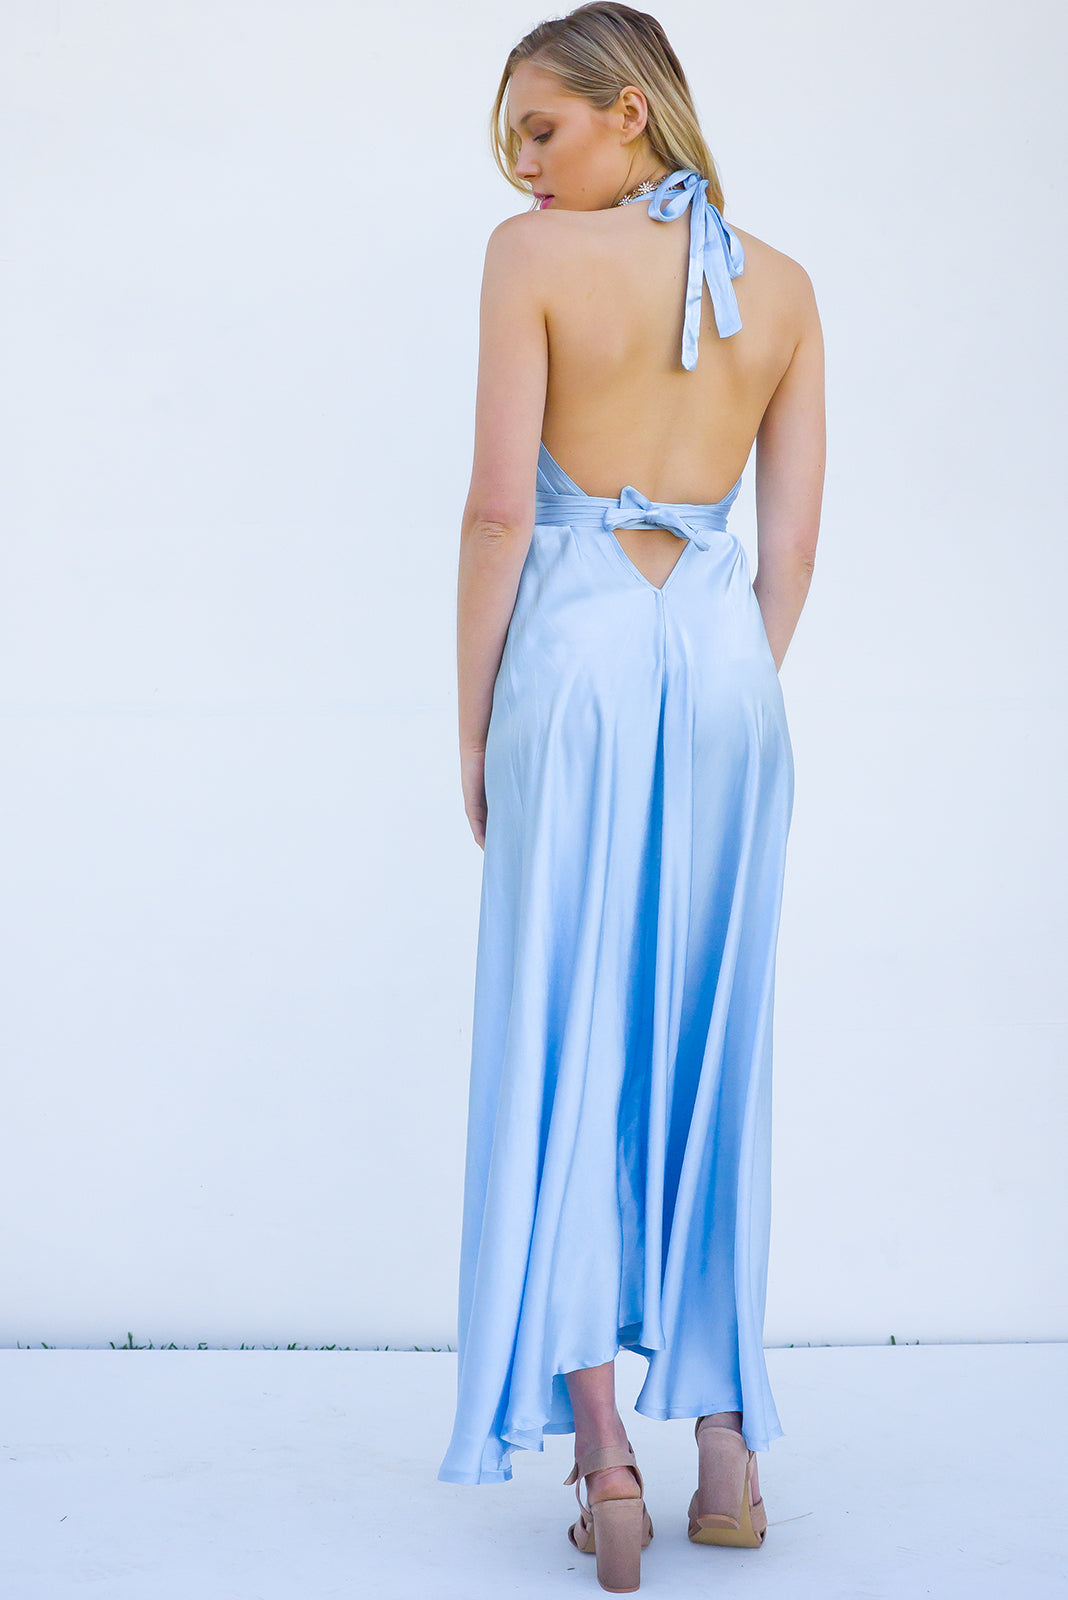 Belle Starr Maxi Dress Backless Halter formal dress in soft ice blue Satin feel fabric